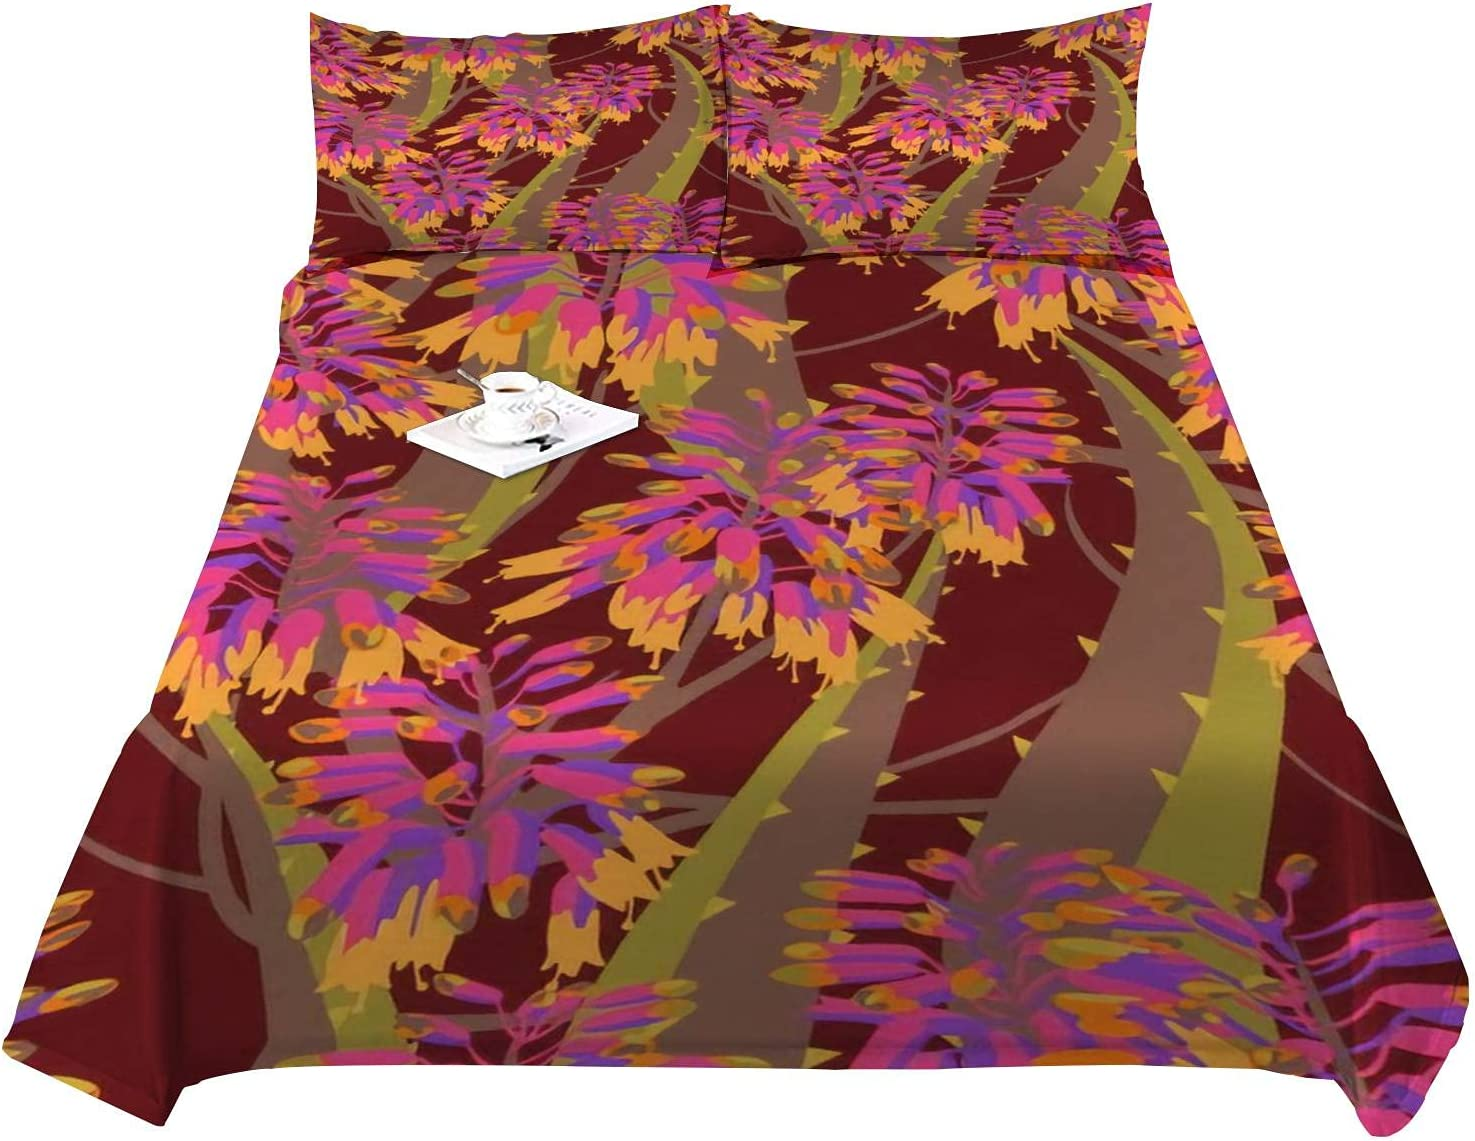 Cooling Cheap mail order shopping Sheets Set Floral Illustration Luxury Composition Bambo